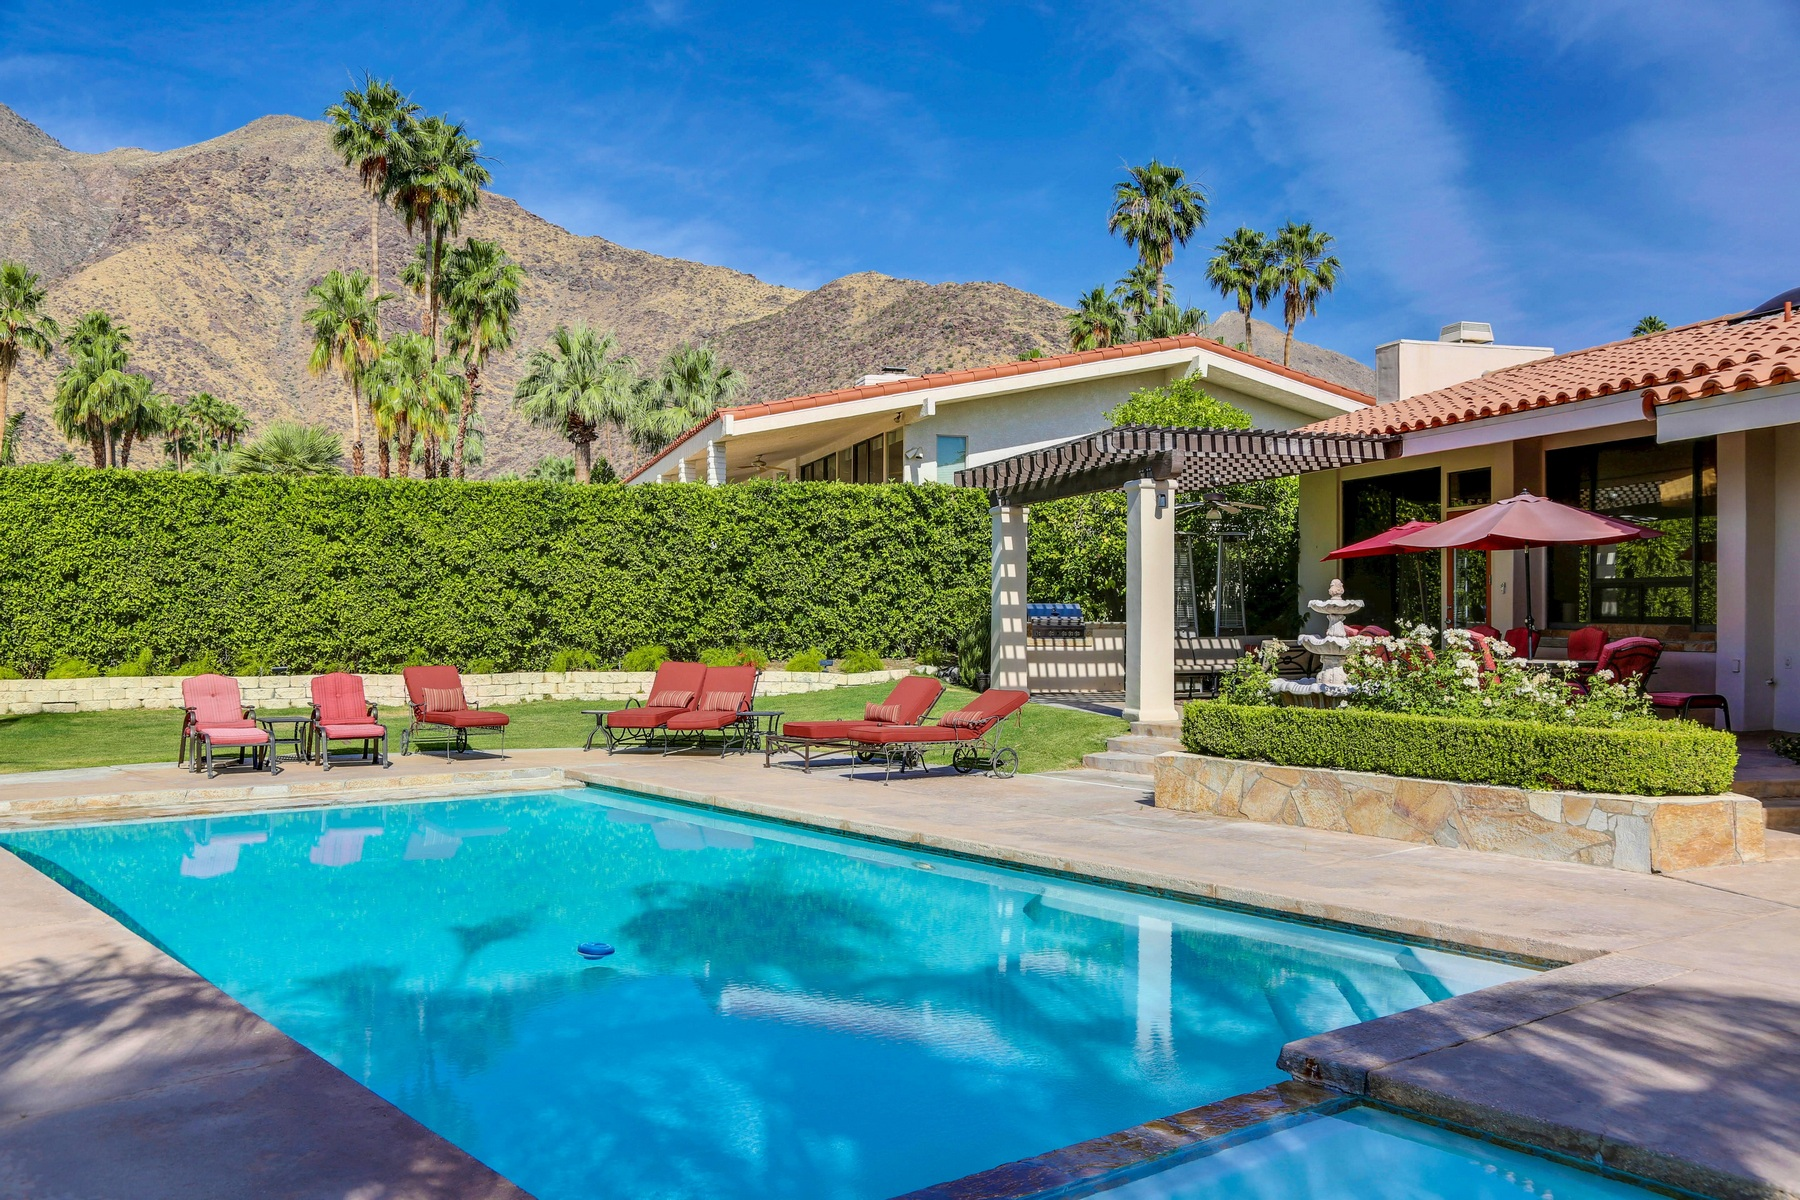 Single Family Home for Sale at 699 Camino Norte Palm Springs, California 92262 United States